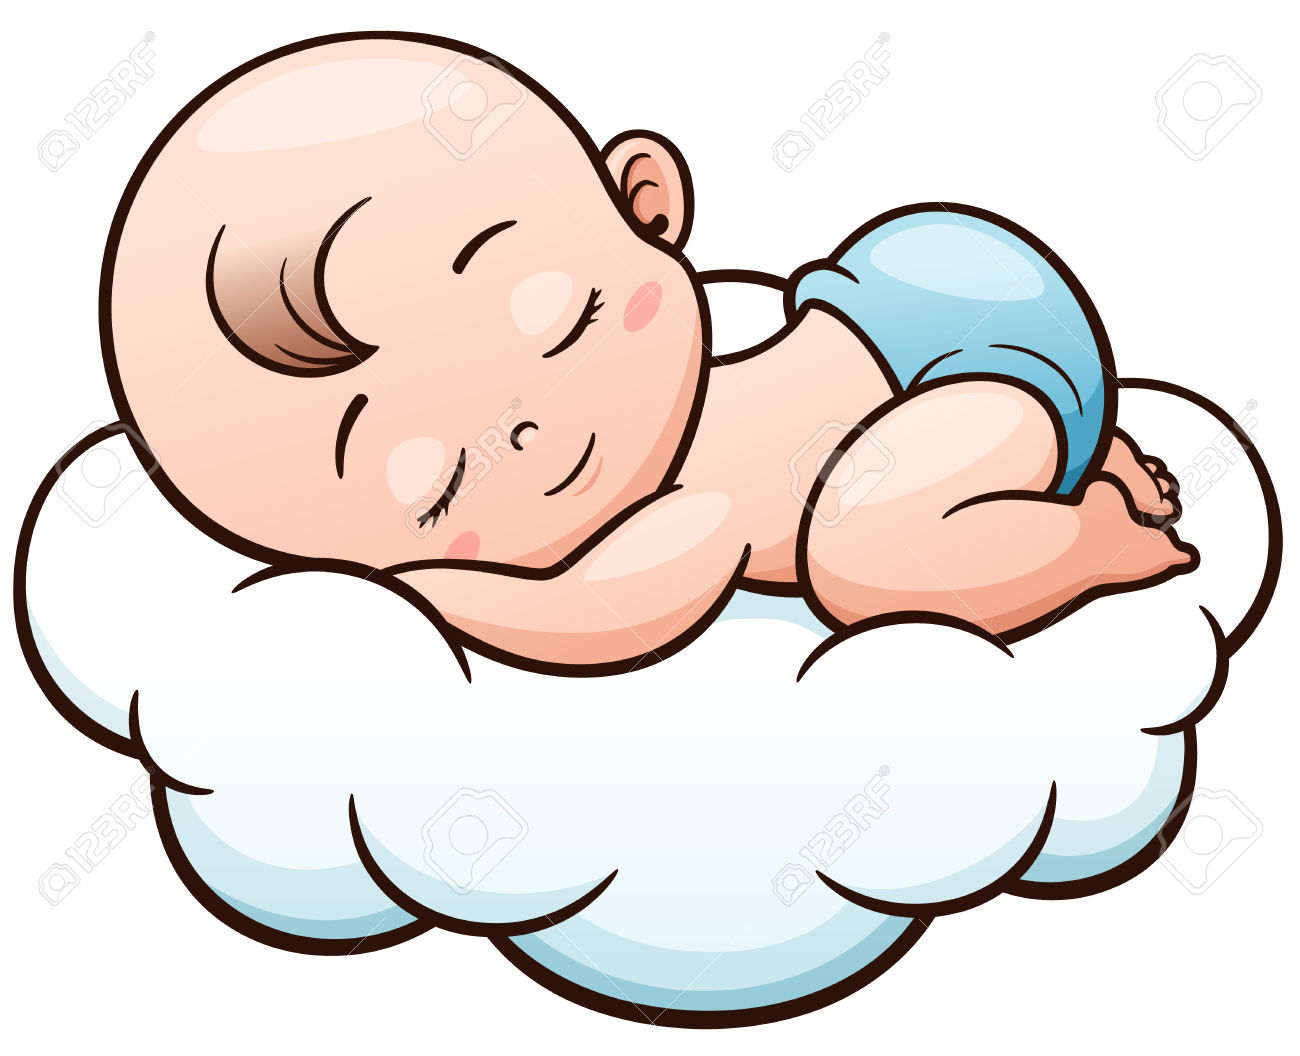 Baby Sleeping Clipart | Free download best Baby Sleeping Clipart on ... picture free stock